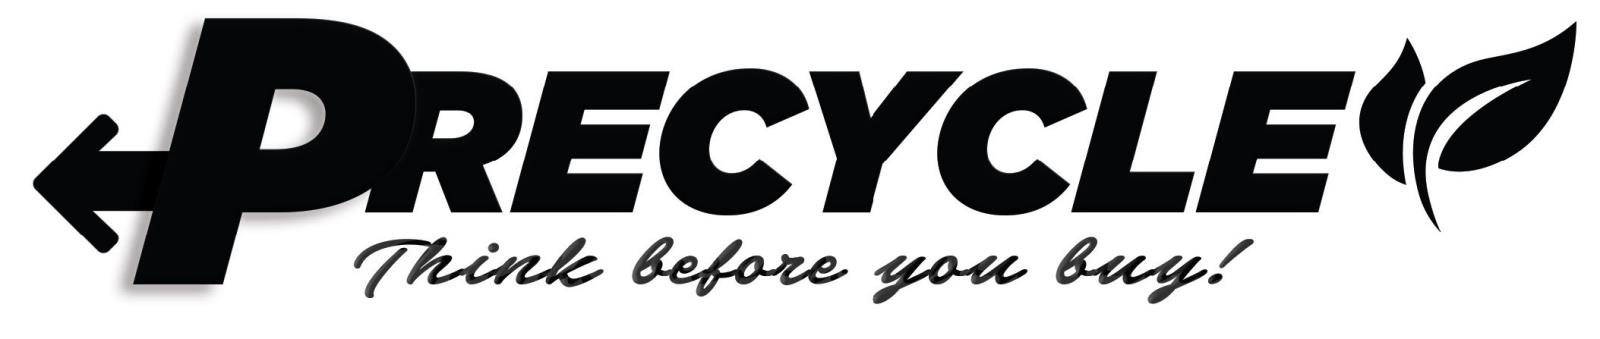 Precycle - Think before you buy!